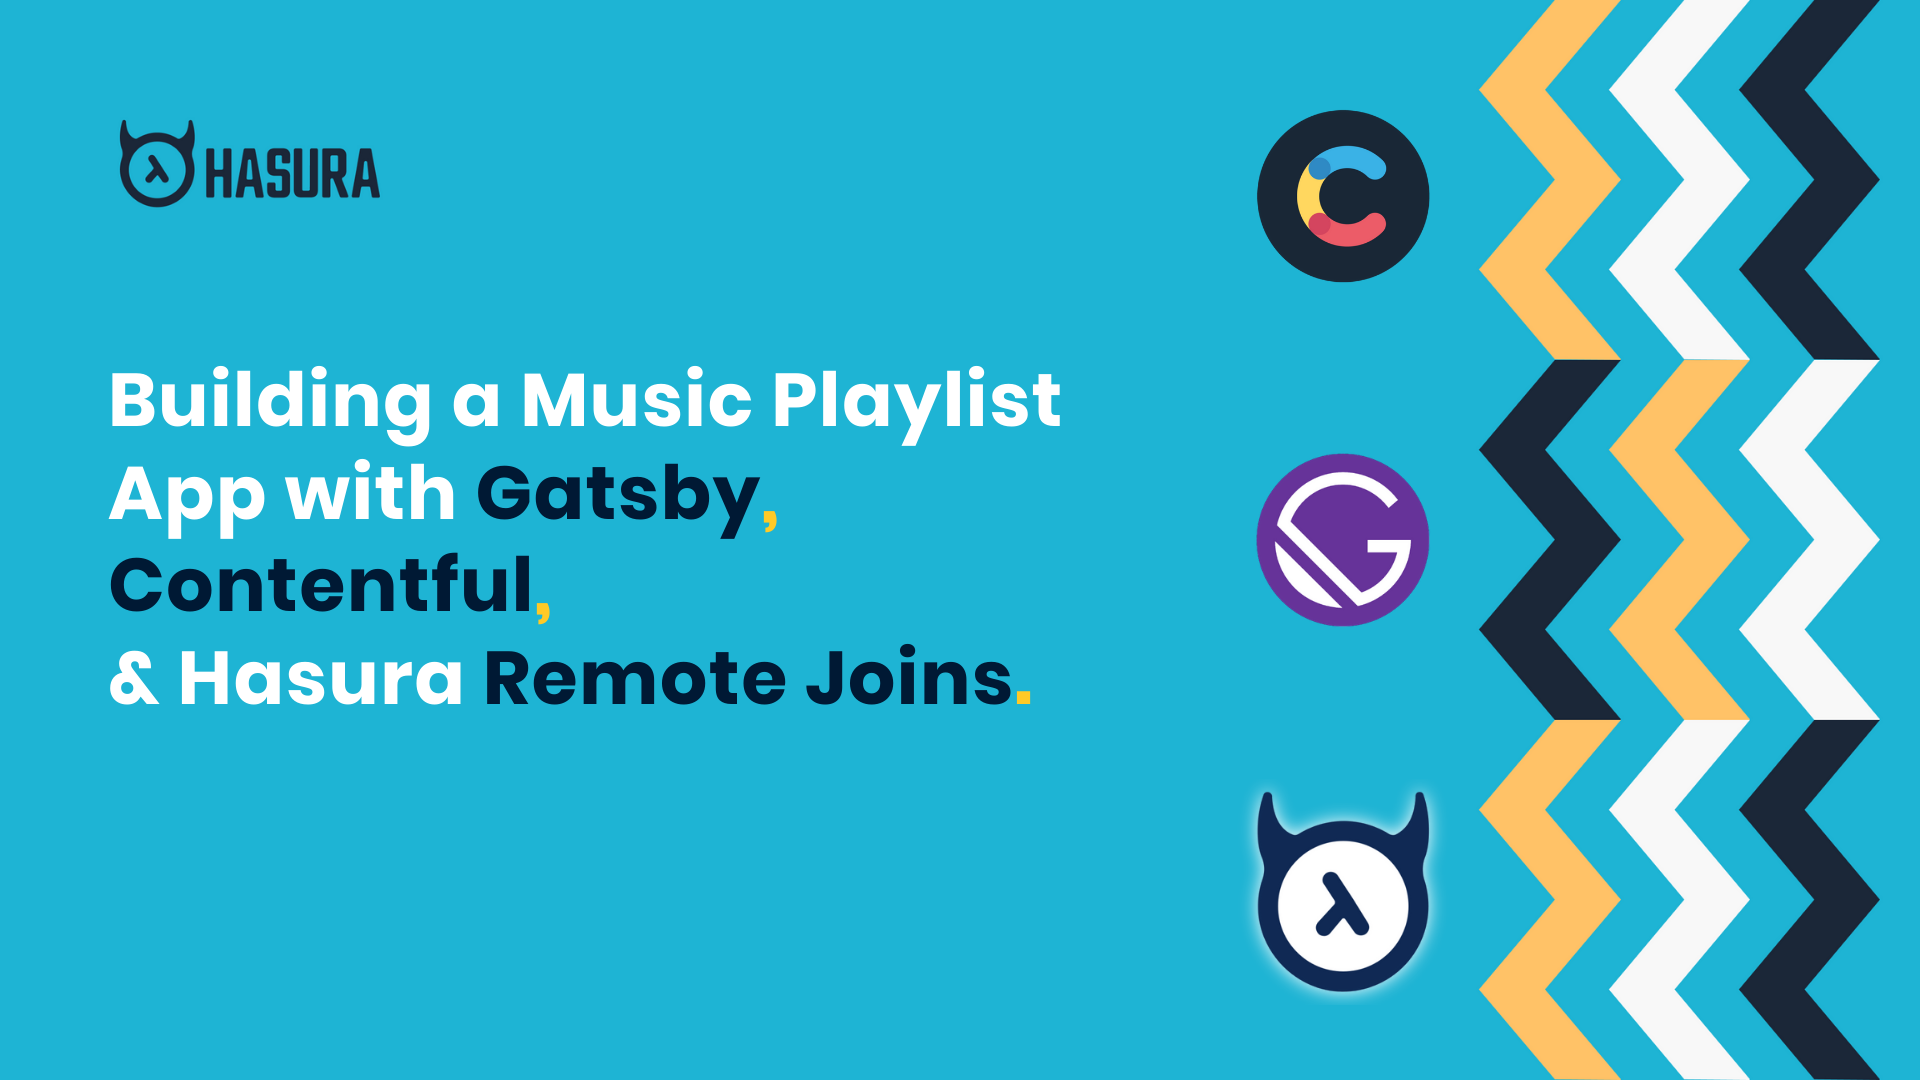 Building a Music Playlist App with Gatsby, Contentful and Hasura Remote Joins